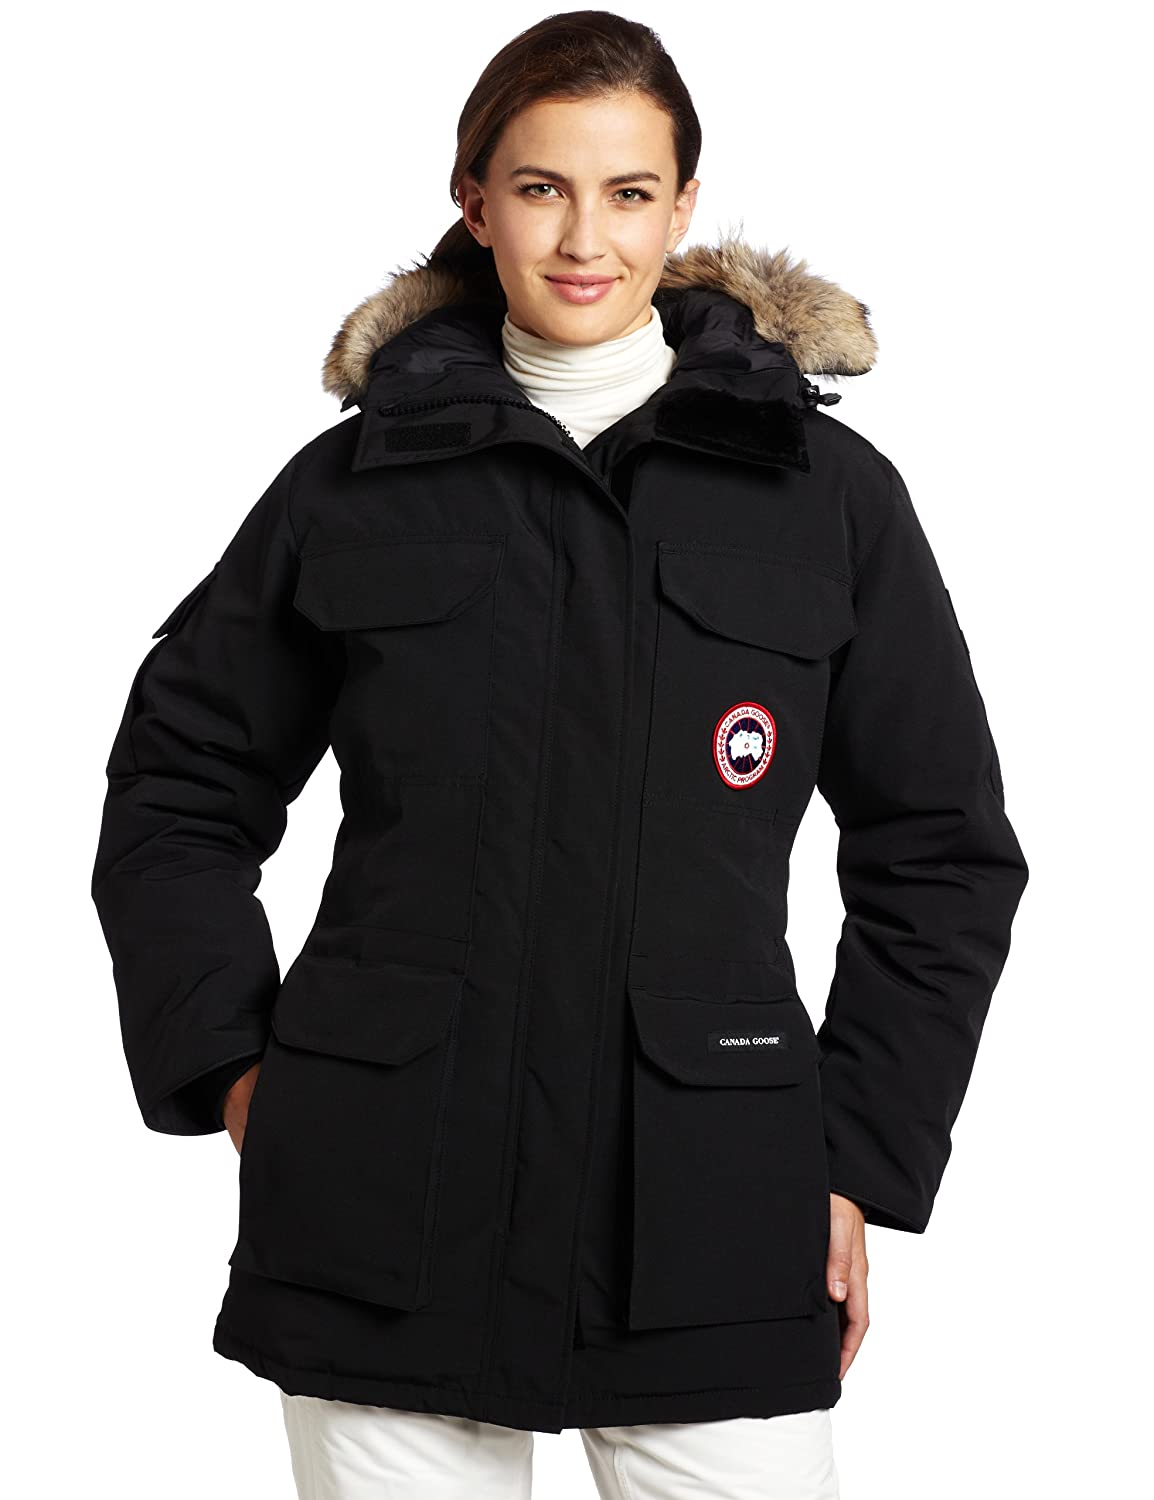 Amazon.com: Canada Goose Women's Expedition Parka: Sports & Outdoors